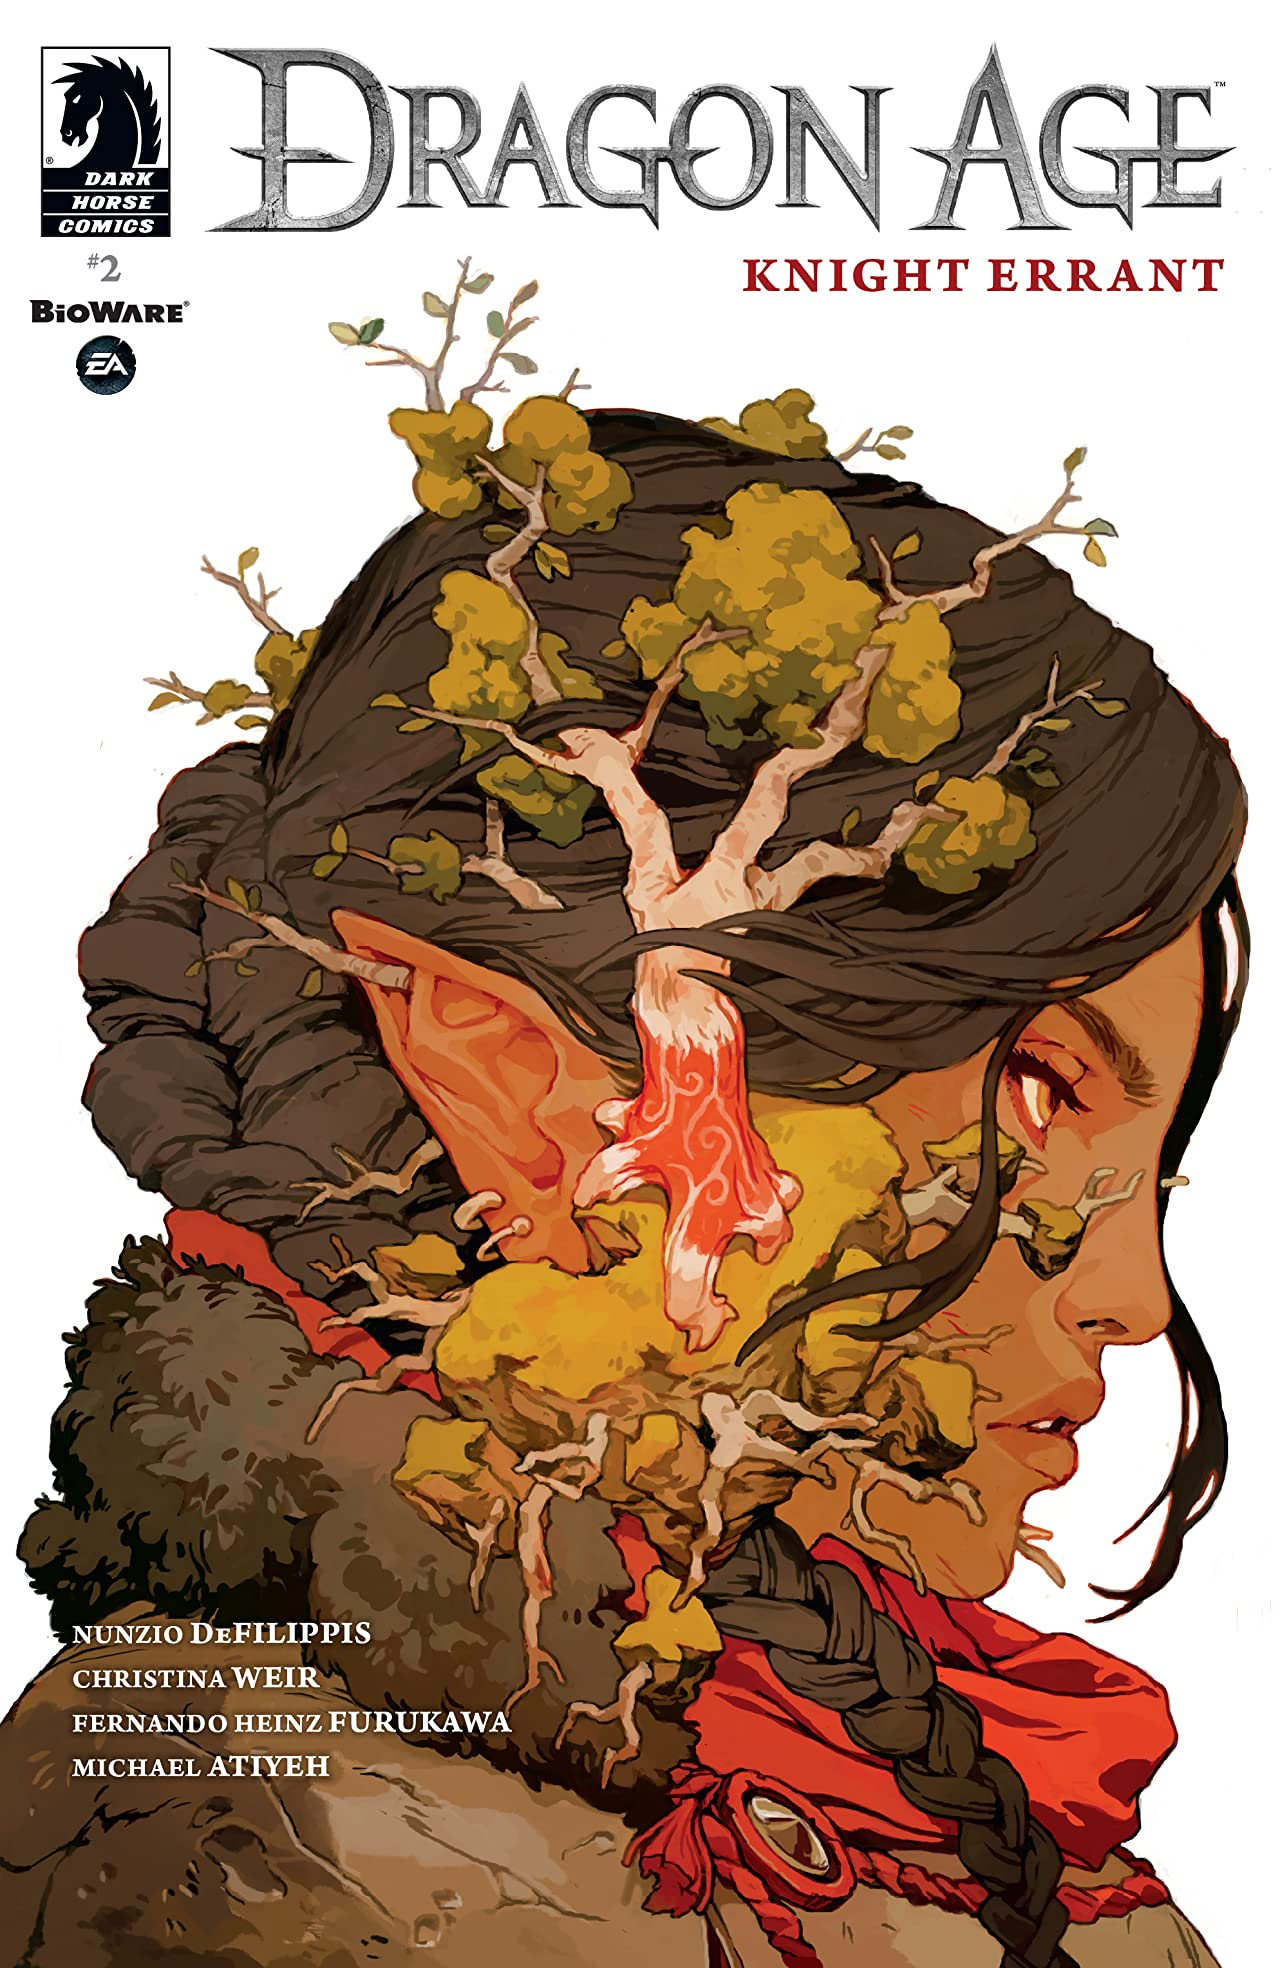 Dragon Age: Knight Errant #2